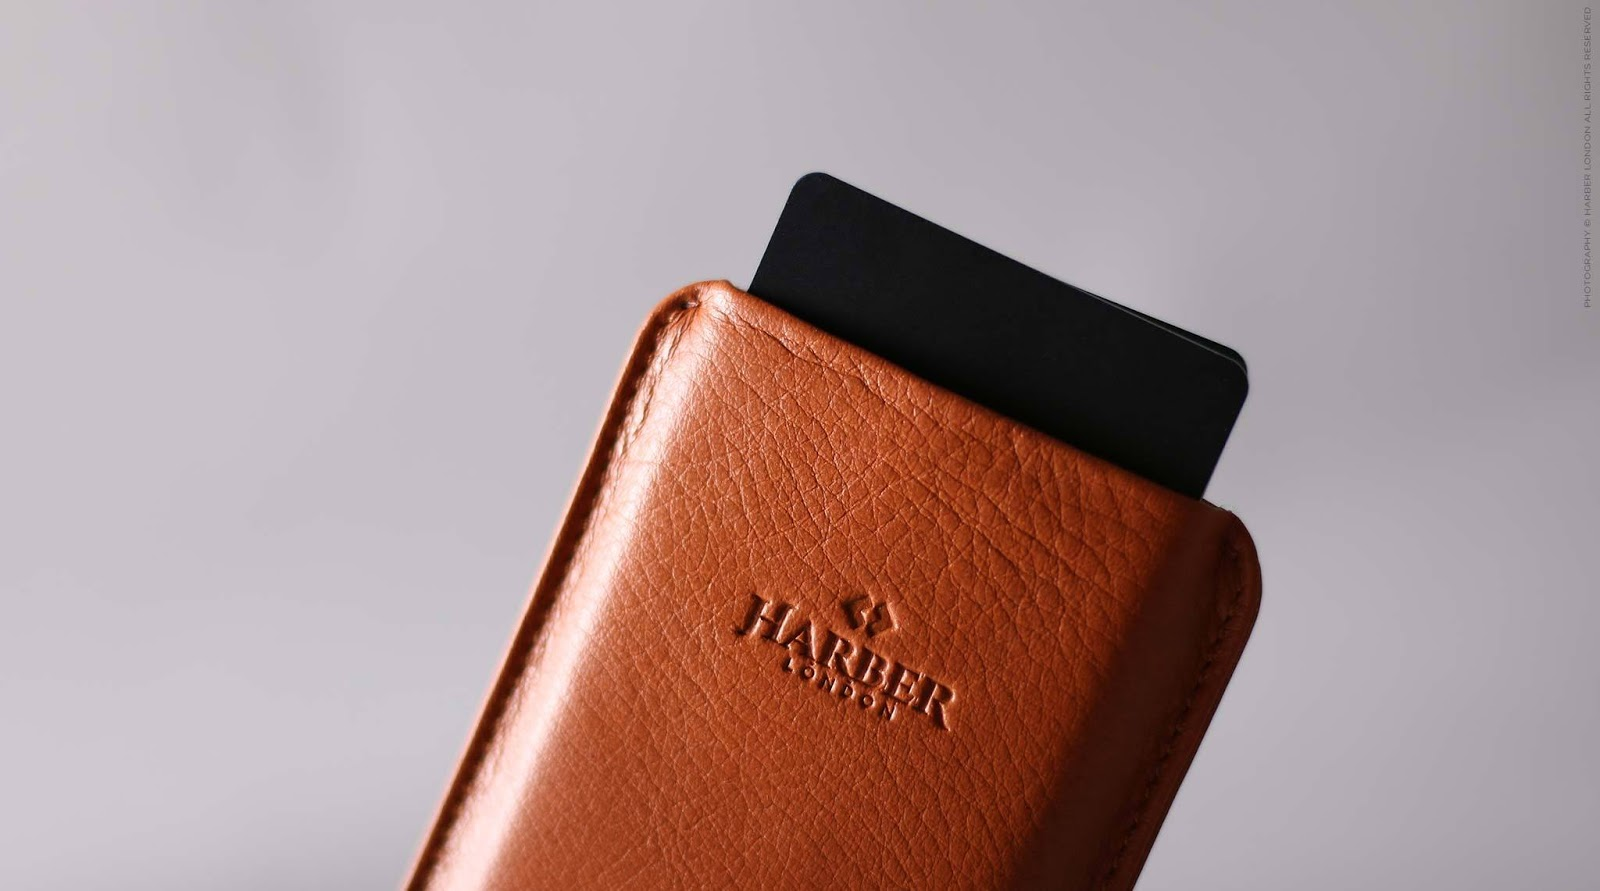 9c0c38b237b8 Harber London Card Wallet Review and Price 2019